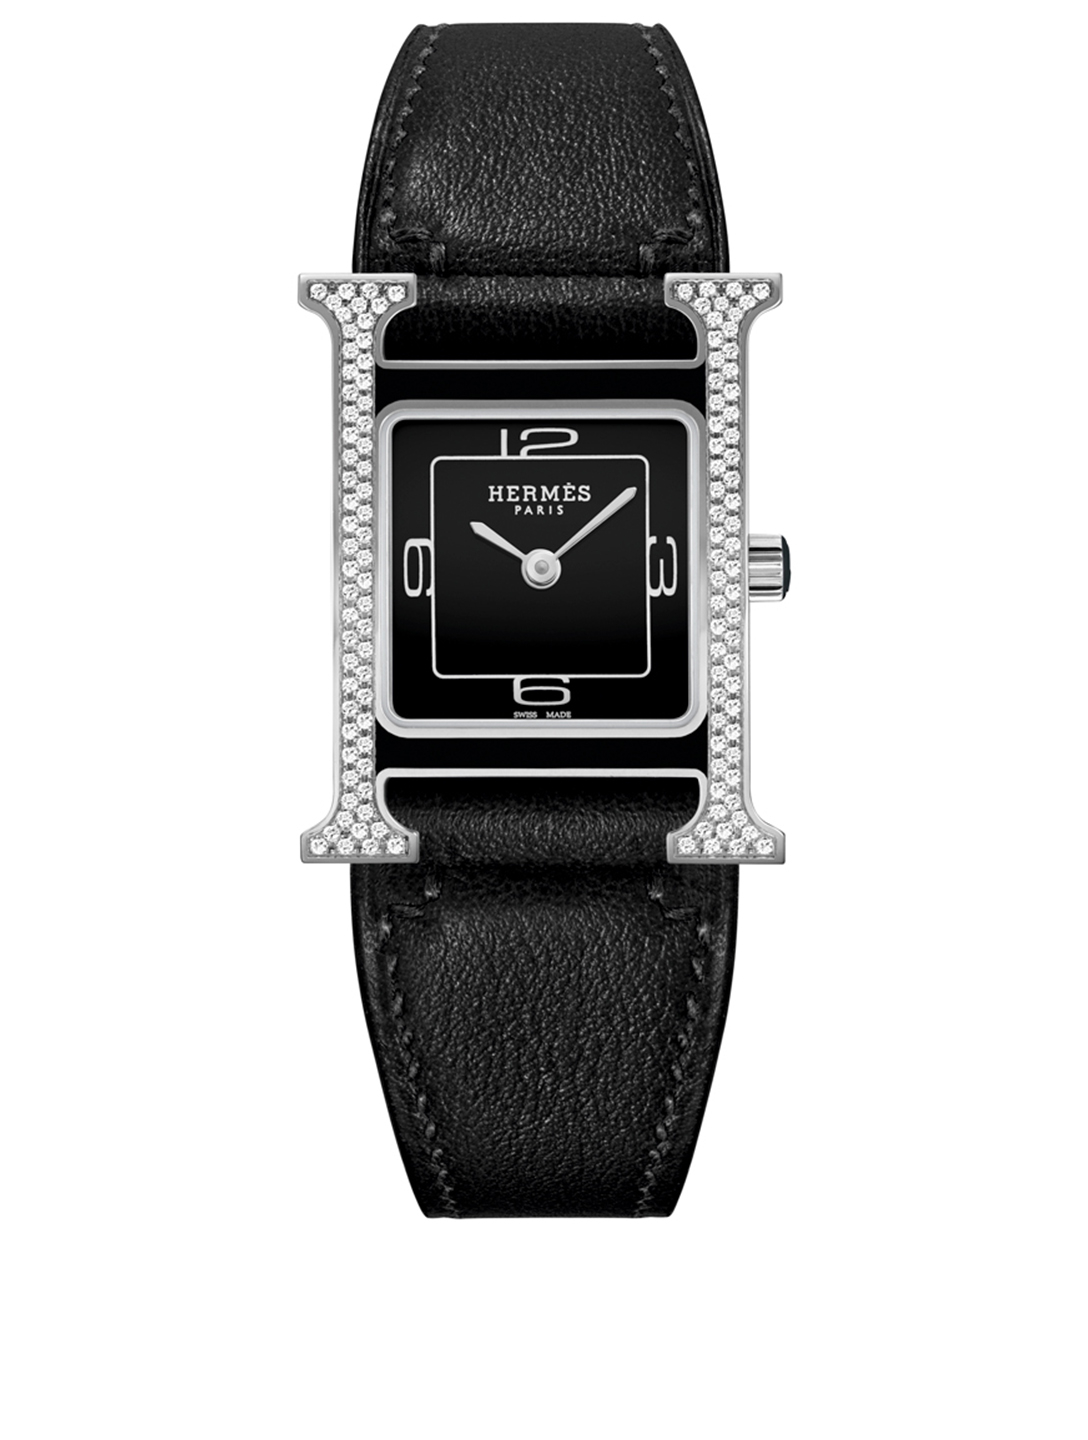 HERMÈS Heure H PM Leather Strap Watch With Diamonds, 21 x 21mm Women's Black